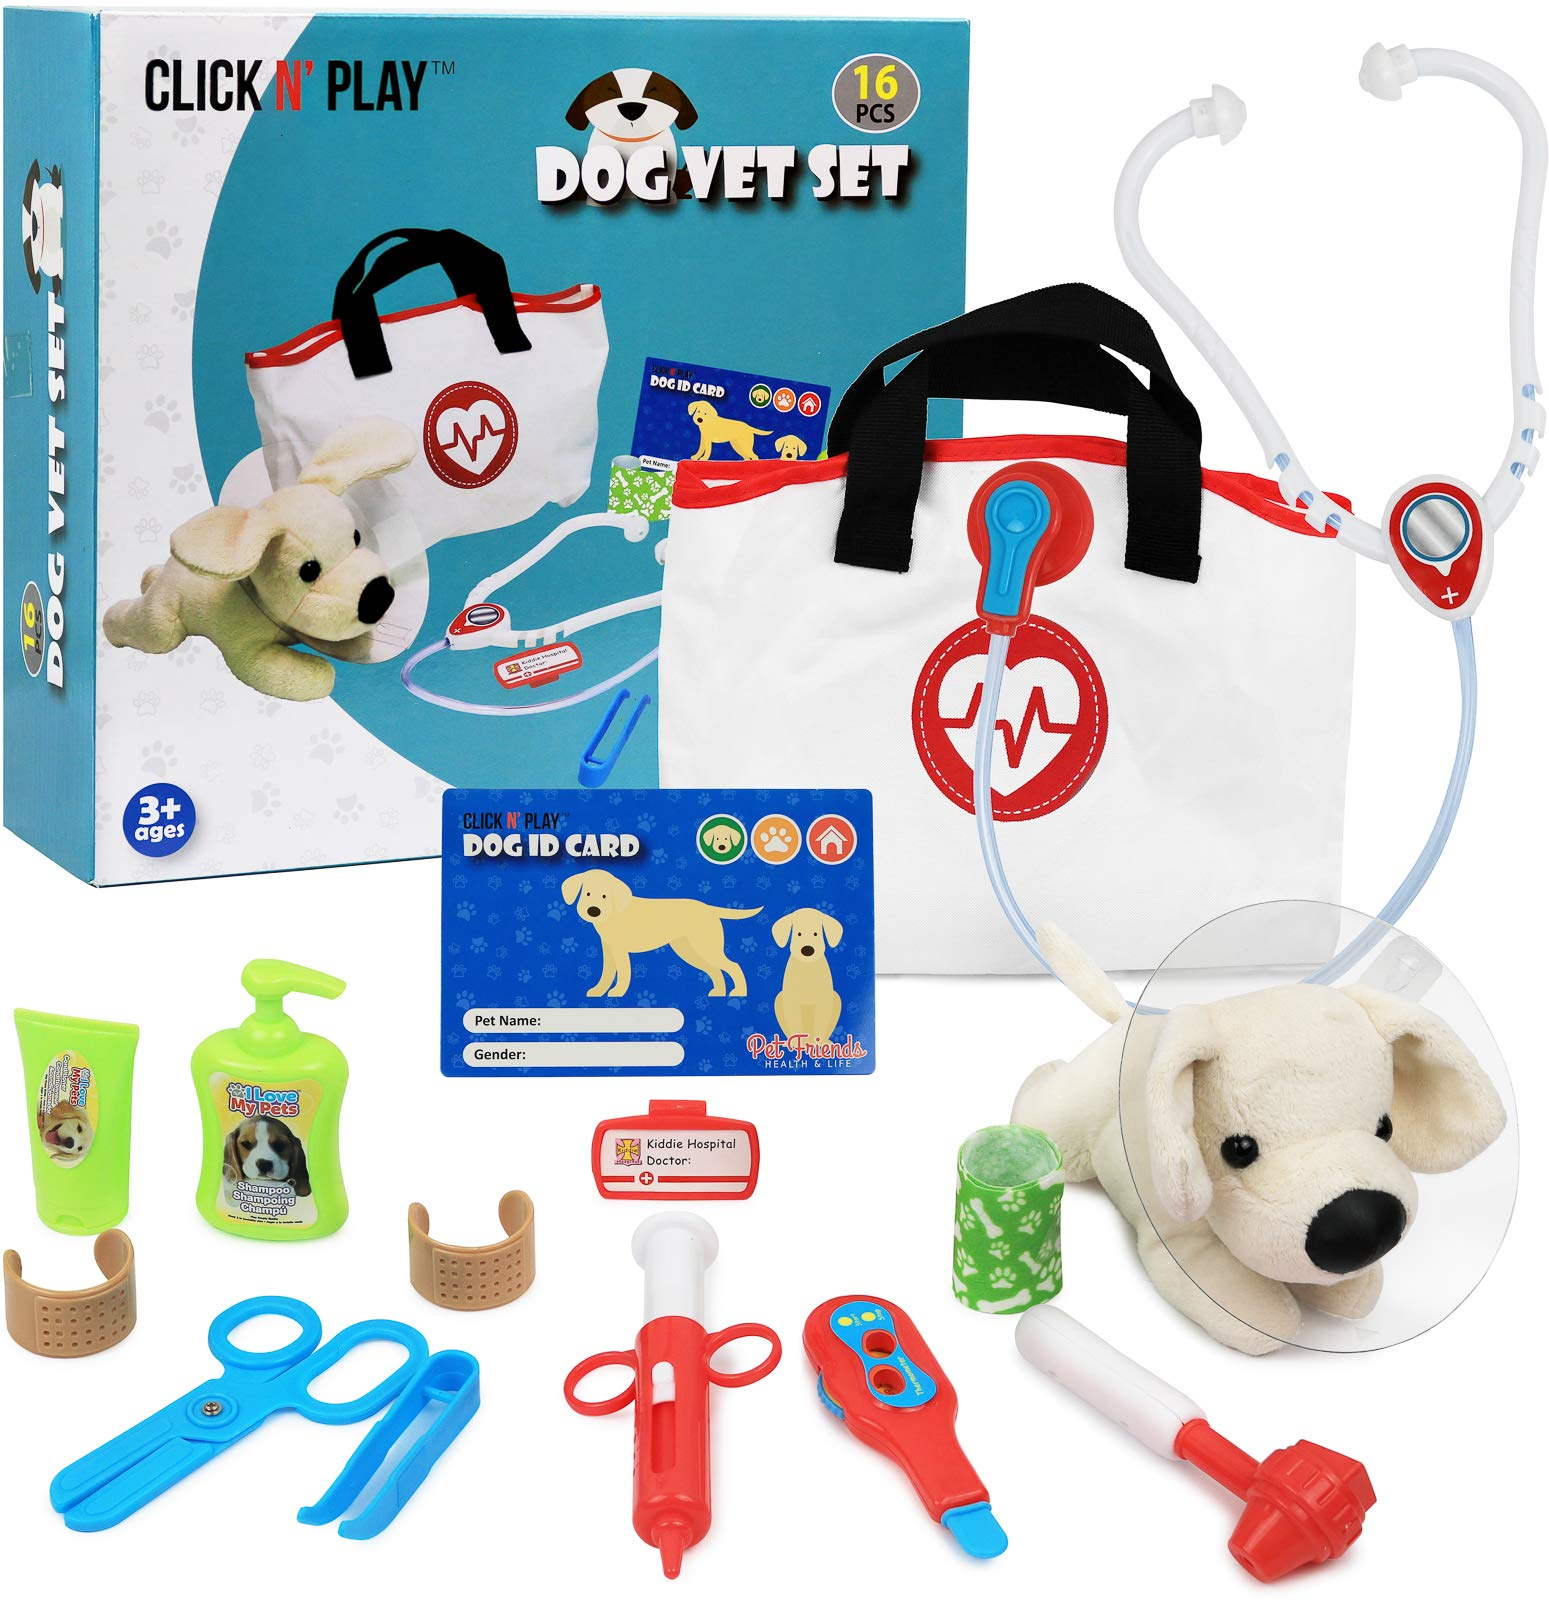 Click N' Play Pretend Play Pet Examine and Treat Vet Veterinary Doctor Play Set for Animal Pets Dogs 16 Pieces by Click N' Play